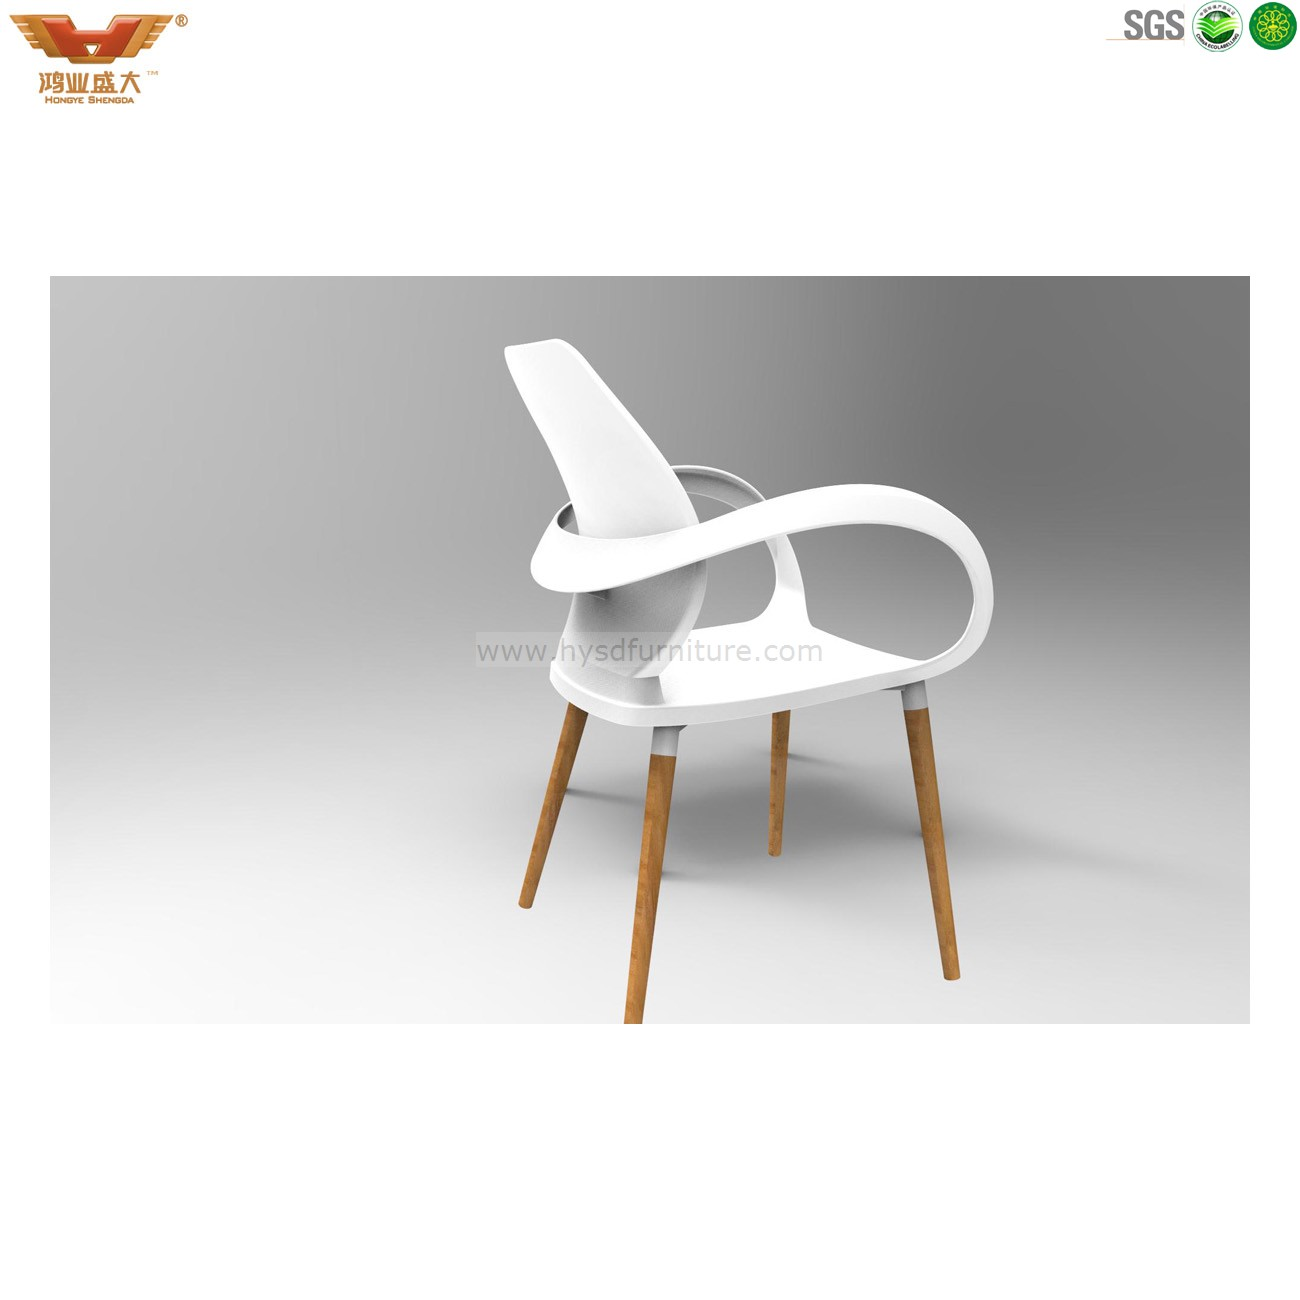 Wholesale Modern Plastic Dining Room Chair With Solid Wood